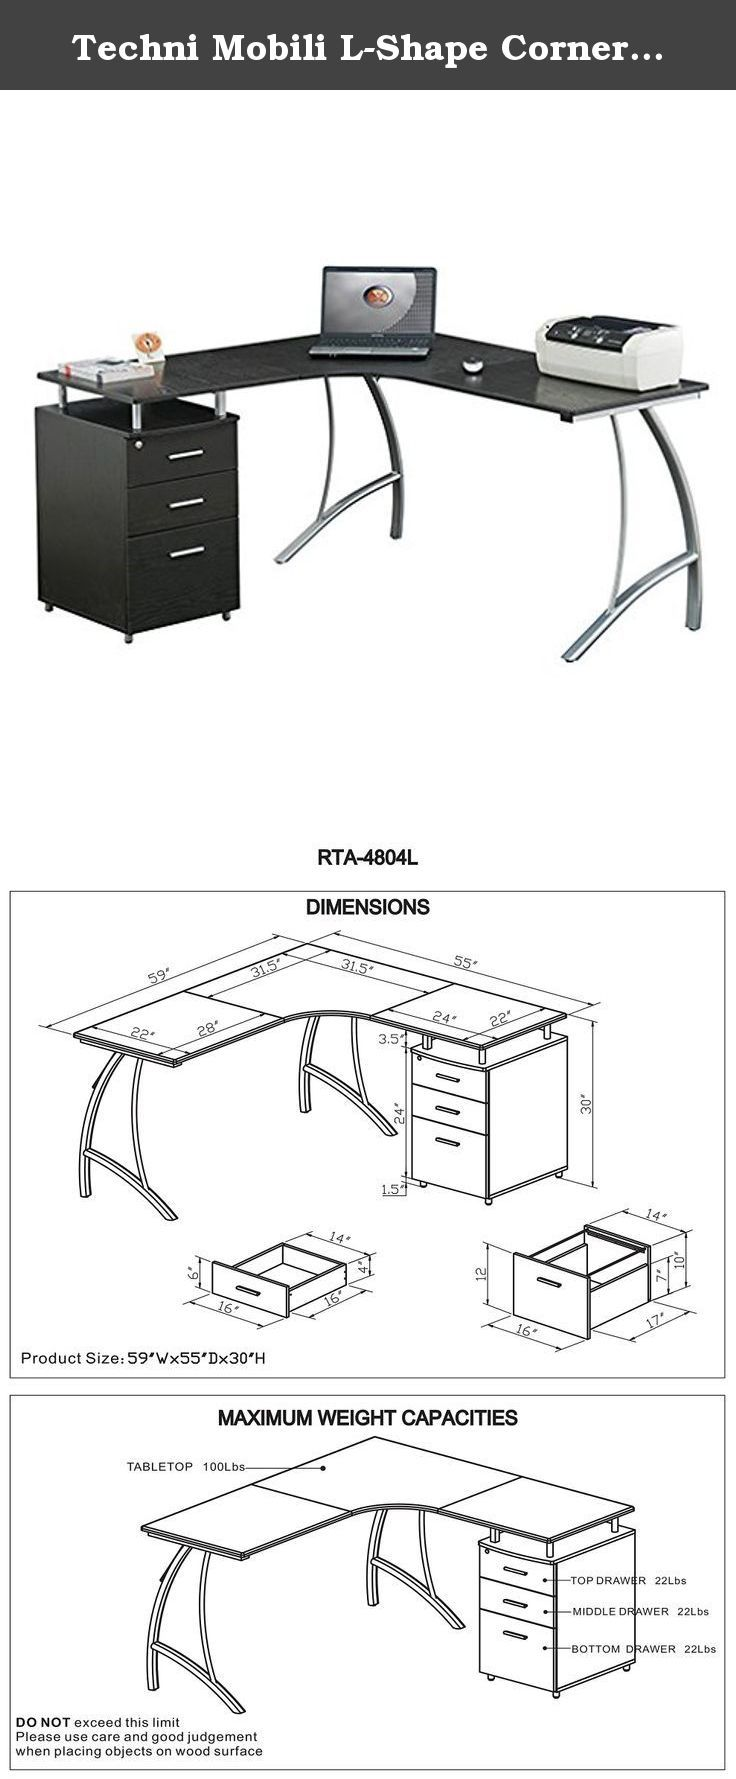 Techni Mobili L-Shape Corner Desk with File Cabinet. Streamlining your workday is as easy as setting up the Techni Mobil L-Shape Corner Desk with File Cabinet. The space-saving L-shaped desk's heavy-duty engineered wood desktop and storage cabinet module are topped with moisture-resistant PVC laminate veneers for extra durability – important when you're piling papers on the desk top and filing them away later in the two accessory drawers and single large file drawer. A built-in locking...